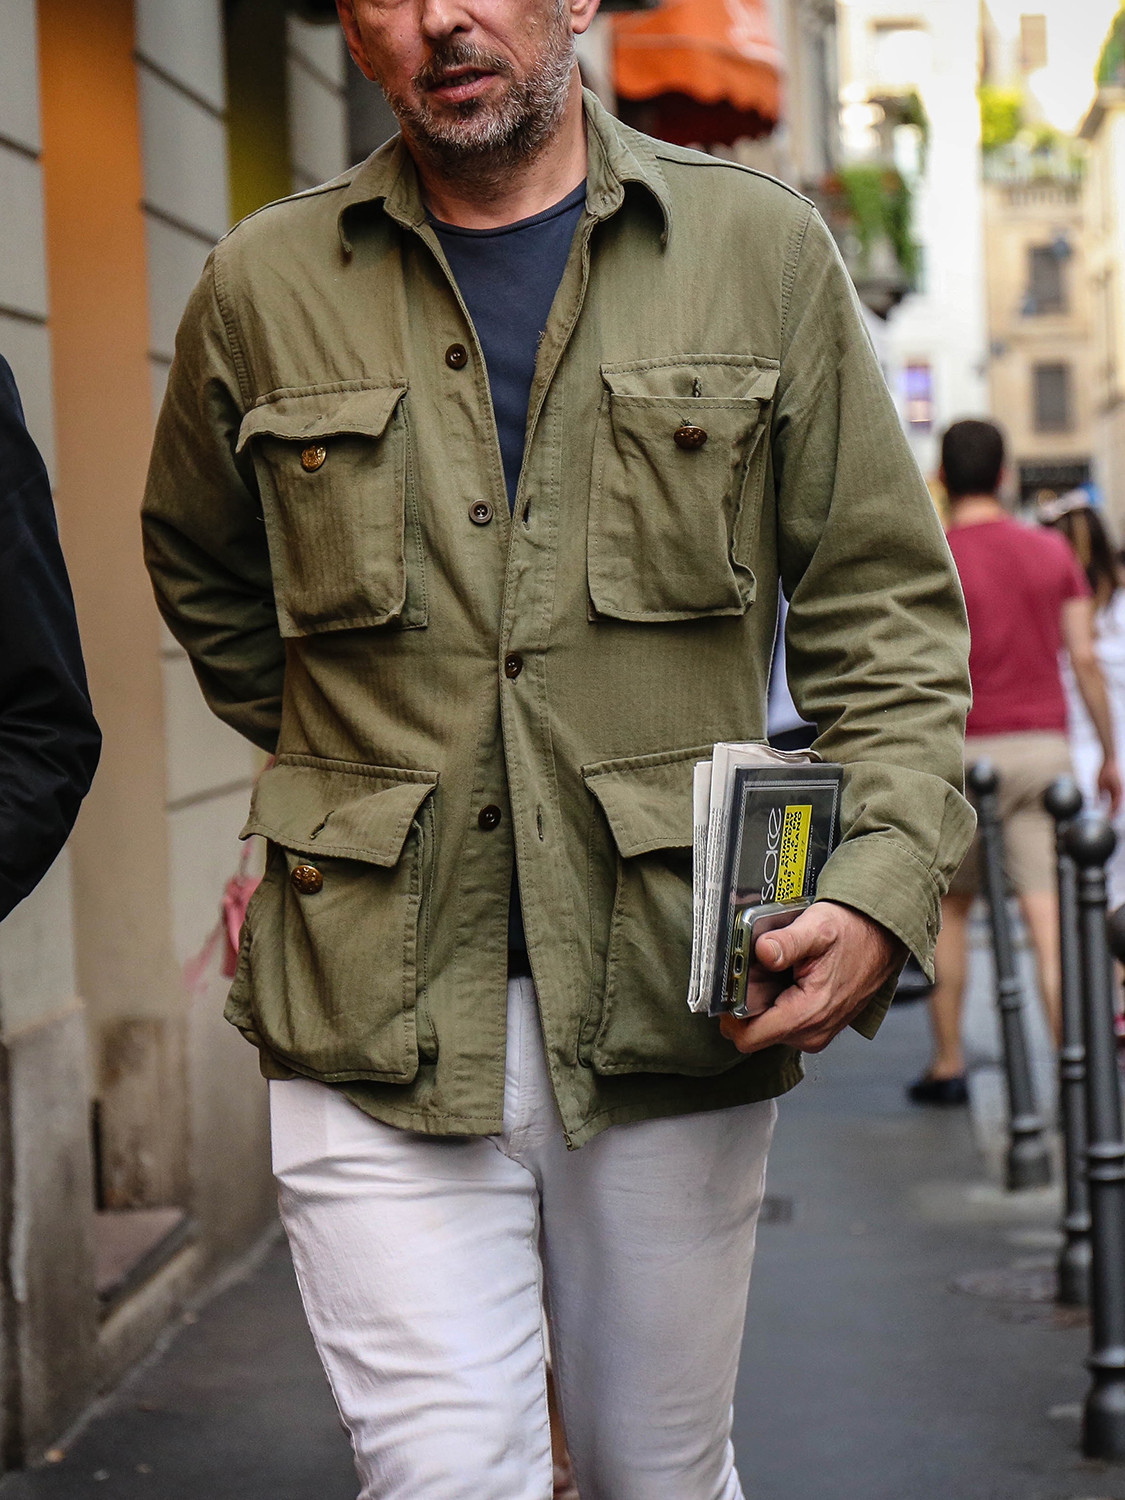 Men's outfit idea for 2021 with green utility jacket, navy crew neck t-shirt, white jeans, brown loafers. Suitable for spring, summer and autumn.